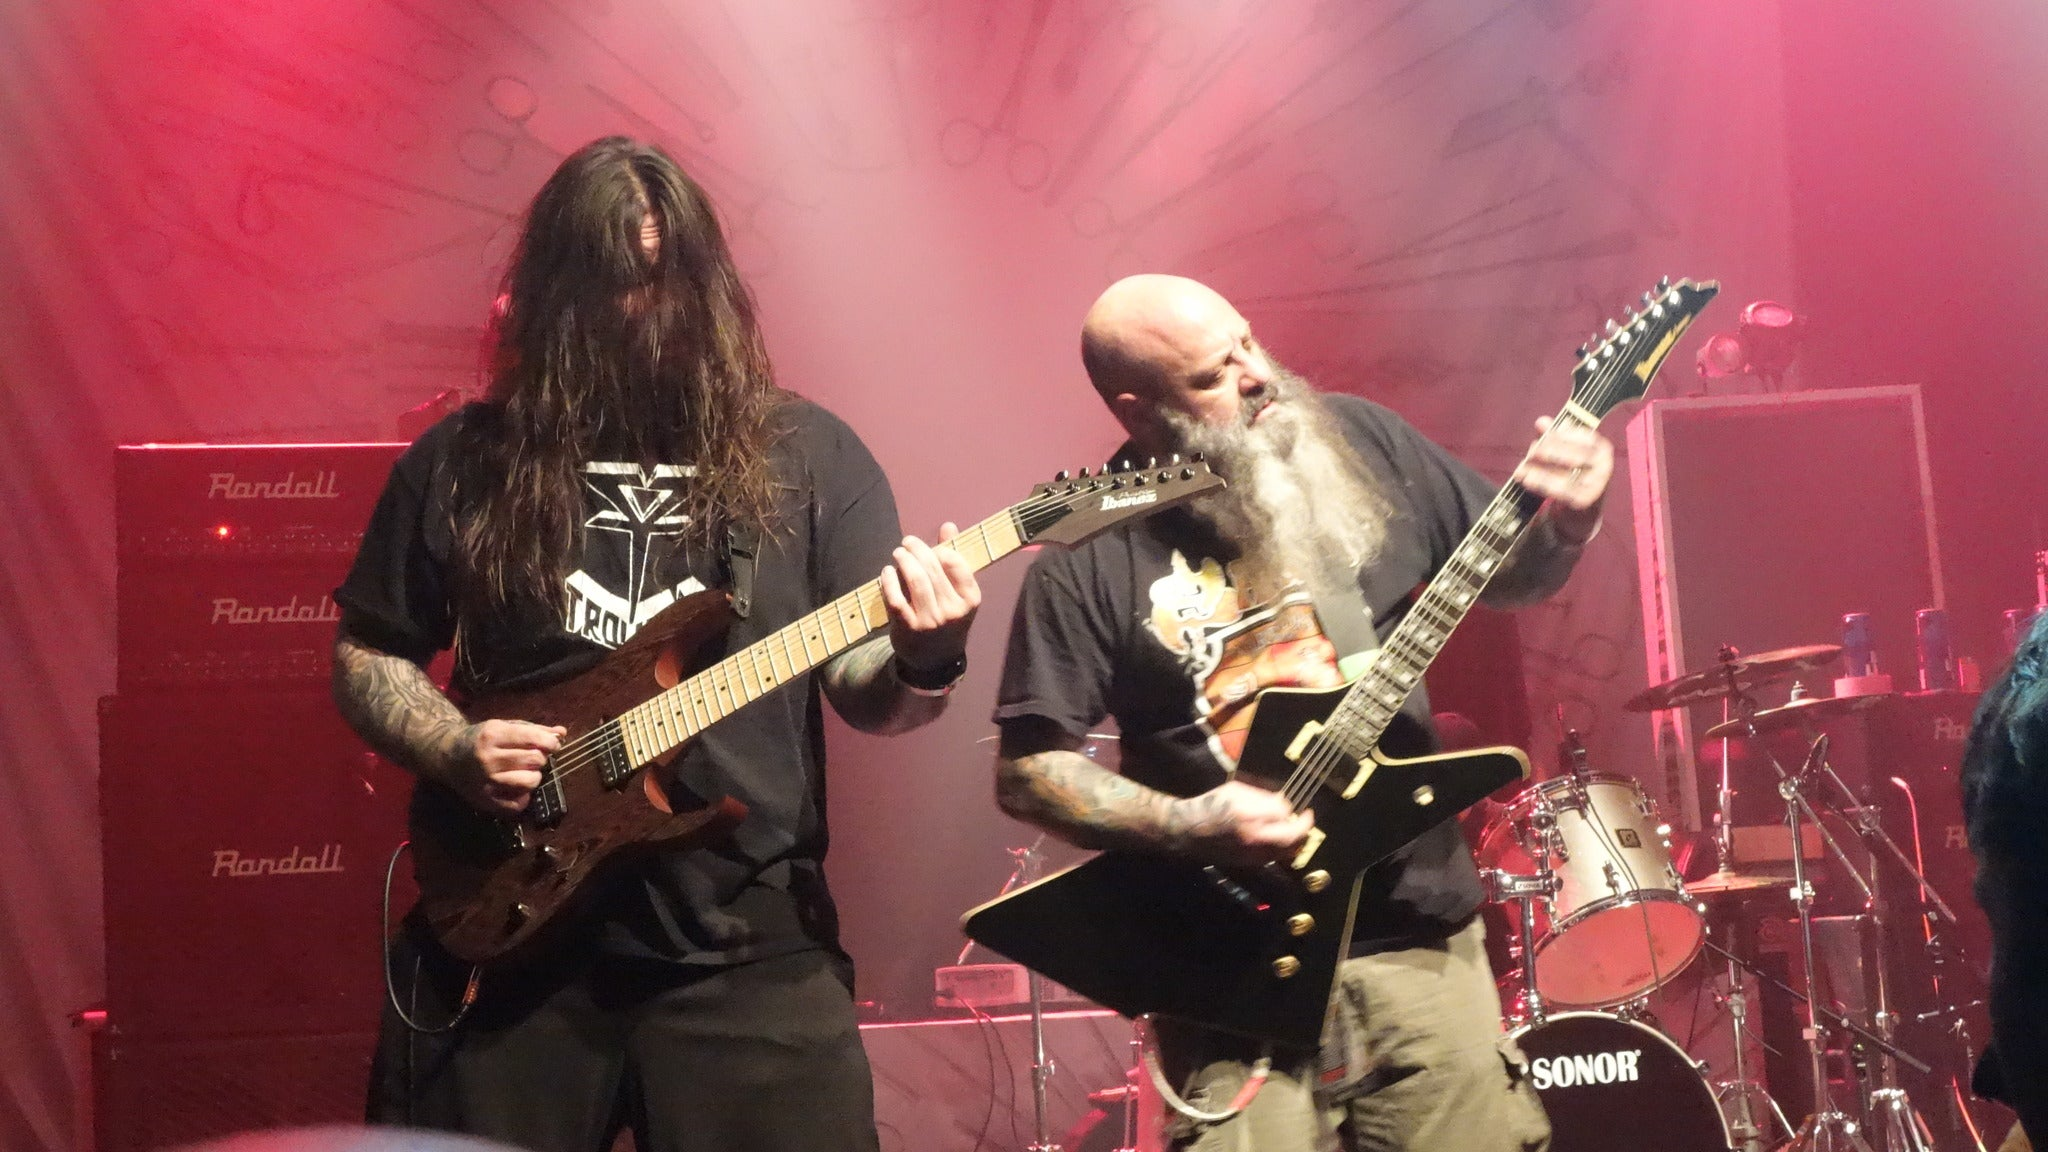 Crowbar & Goatwh**e at Masquerade